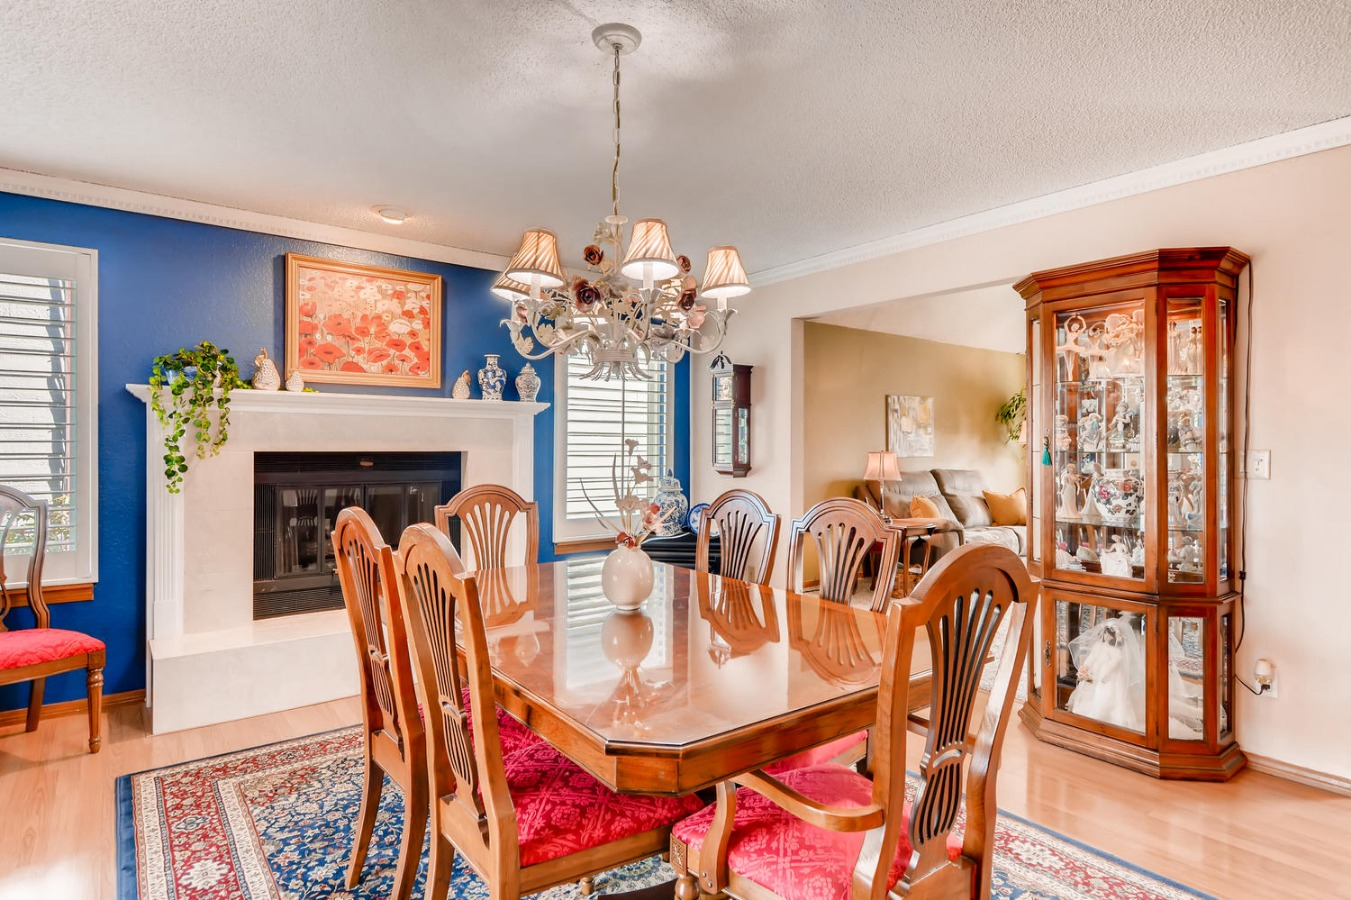 A Dining Room with Graciousness